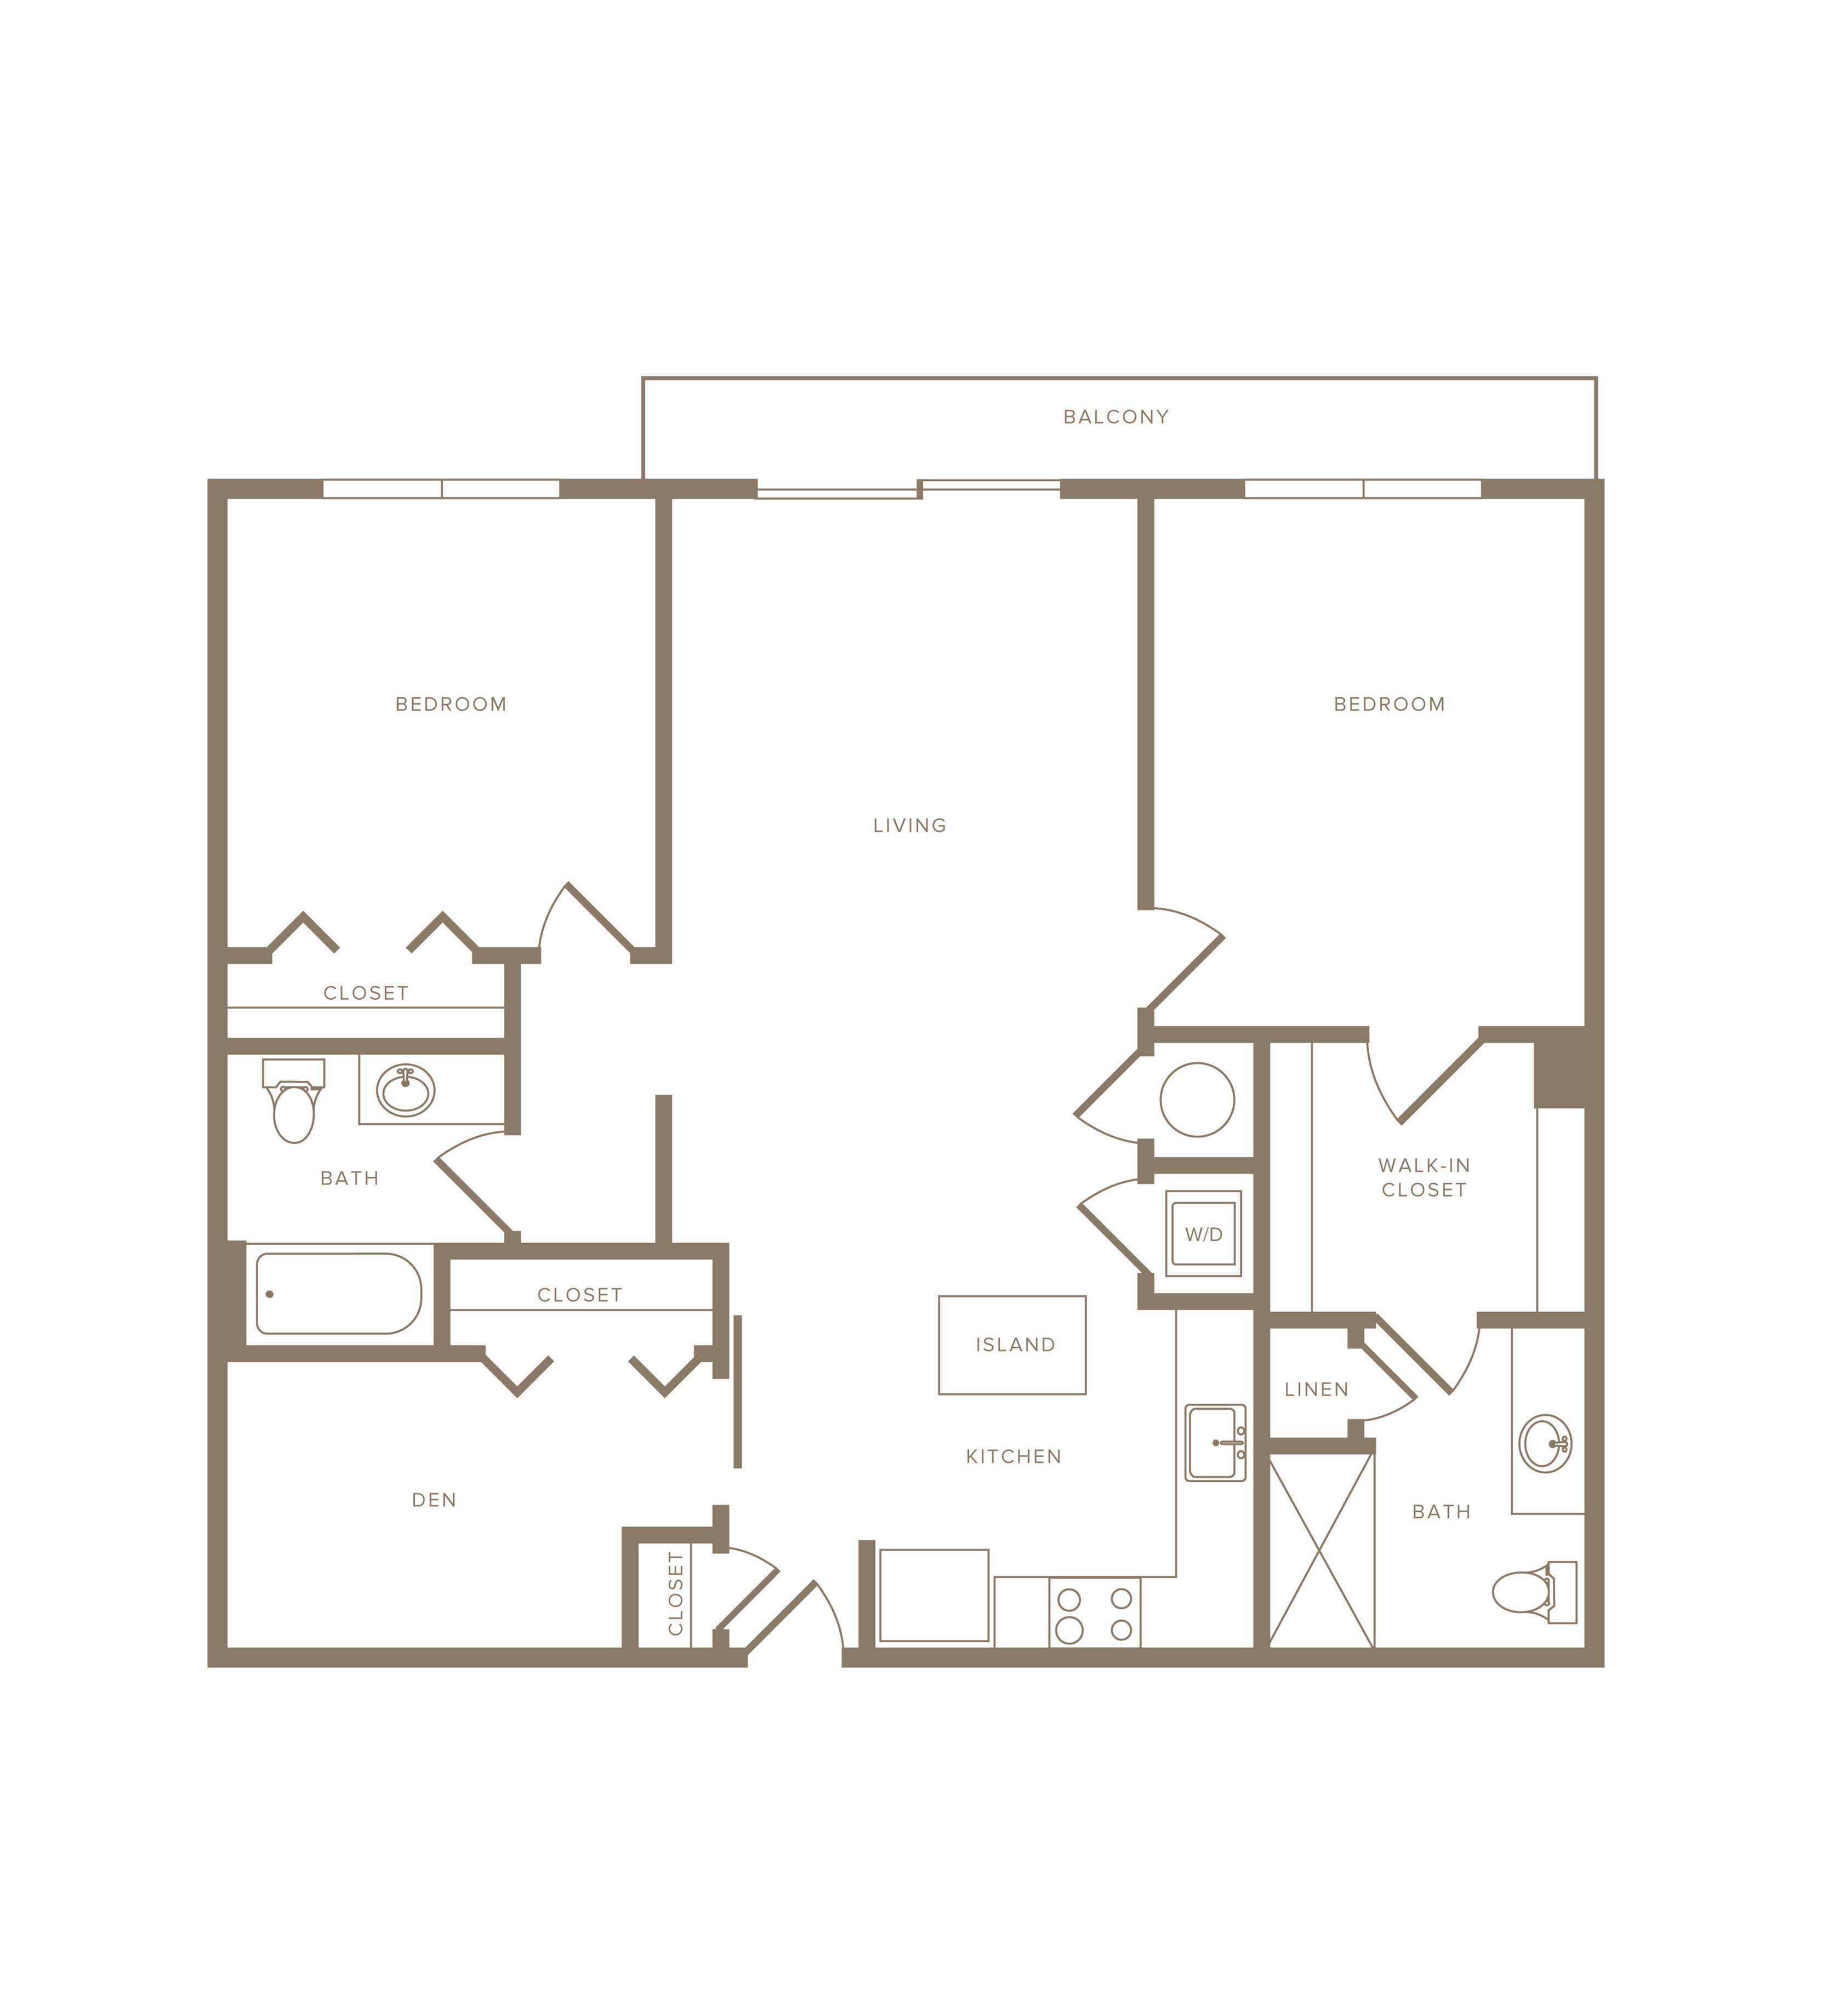 2 bedroom floor plans awesome tiny house floor plans bedroom with